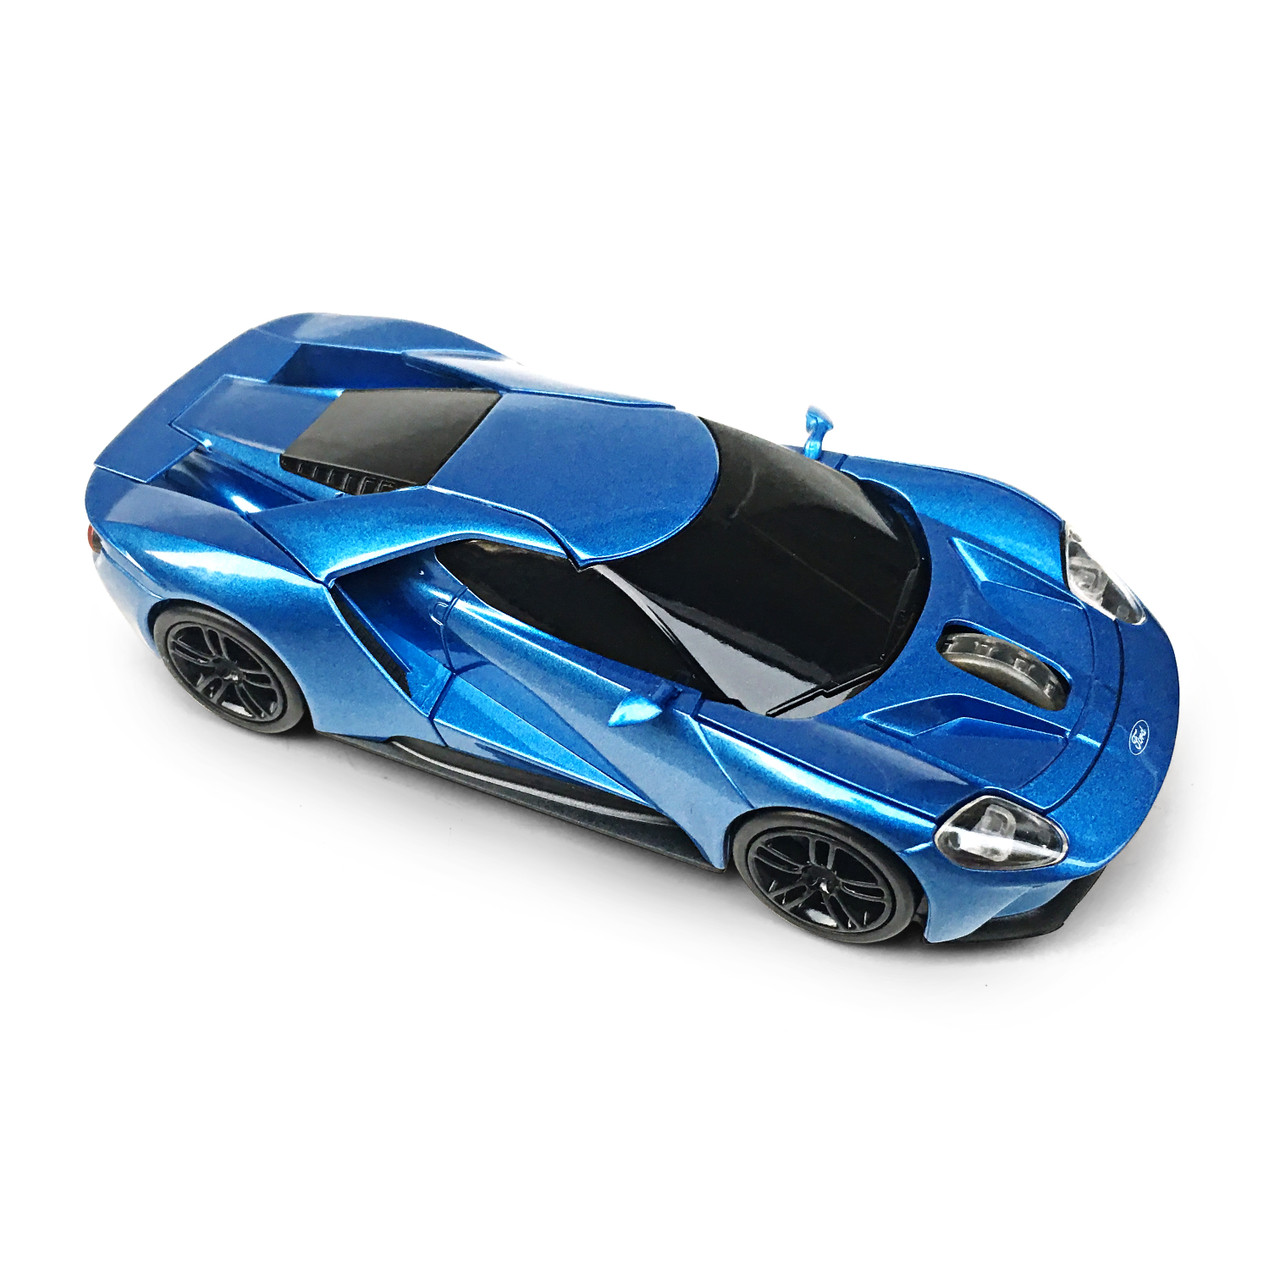 Official Ford GT Sports Car 2017 Wireless Computer Mouse